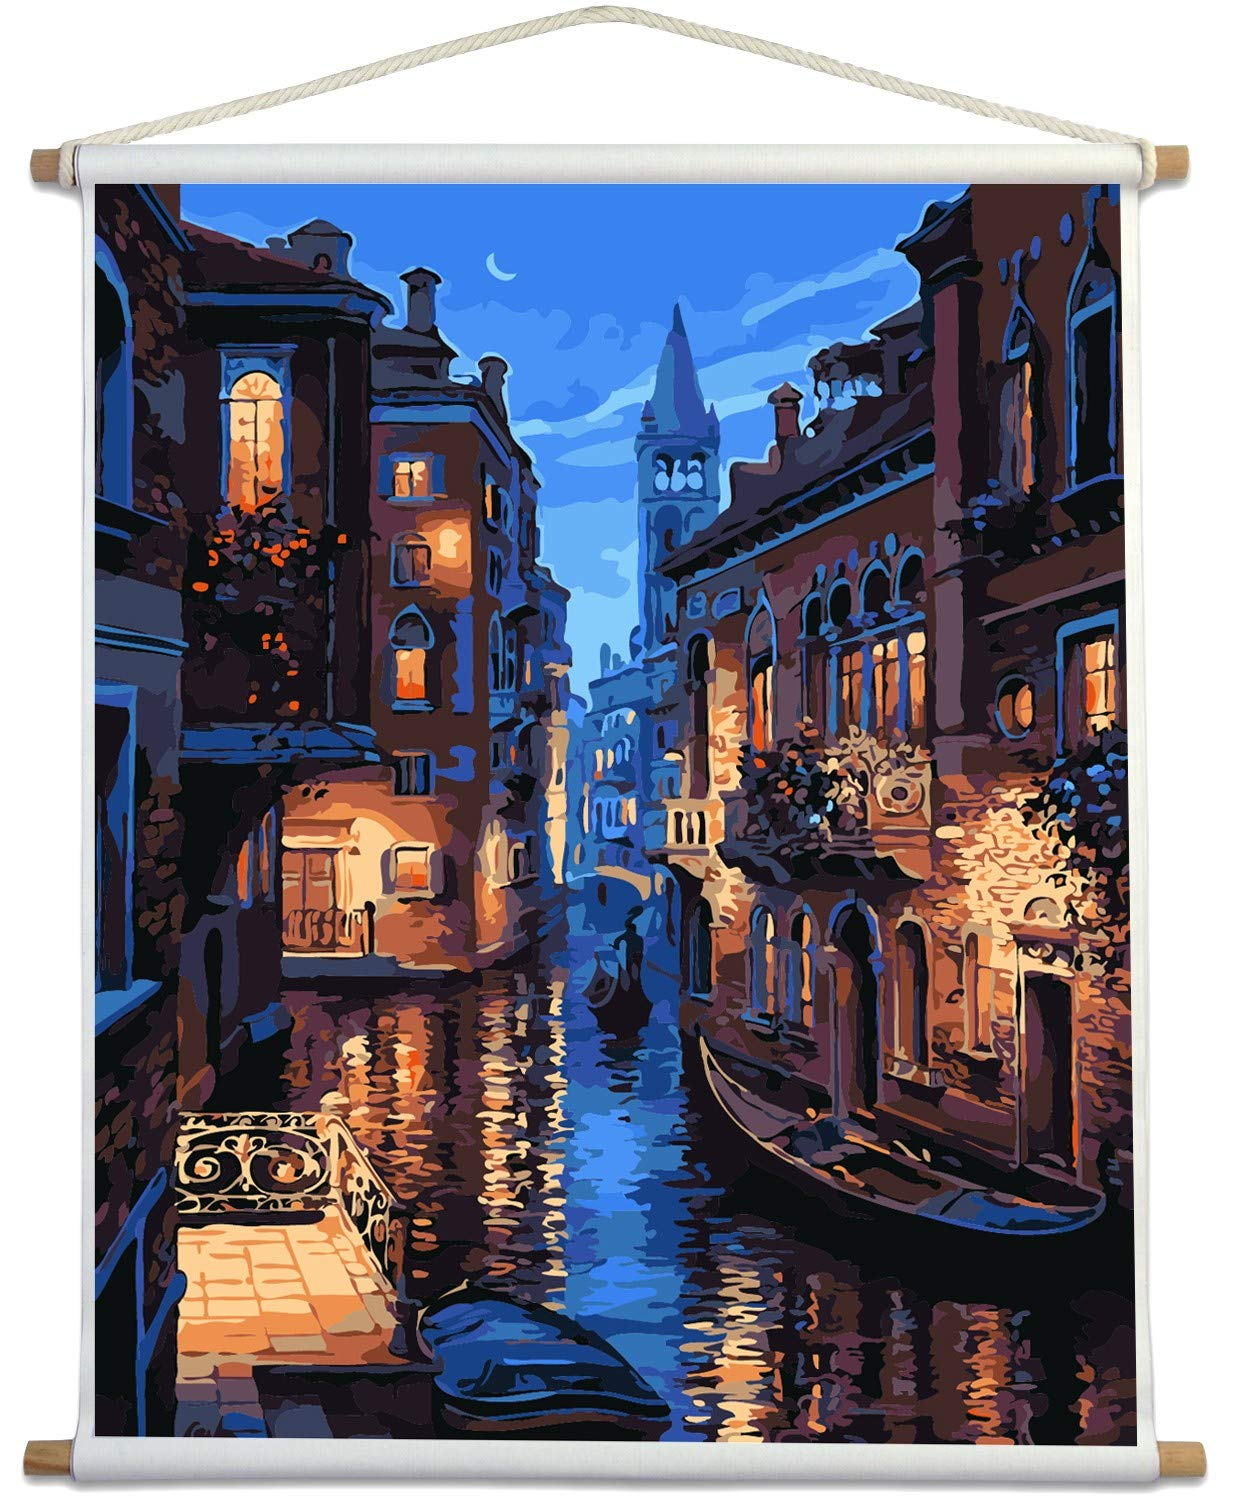 Paint by Numbers for Adults Kits with Wooden Stick The Giant Dimensions Plaid DIY Acrylic Oil Painting Kit for Adult Beginner on Canvas 16''X20'' Venice Evening by MOCRA